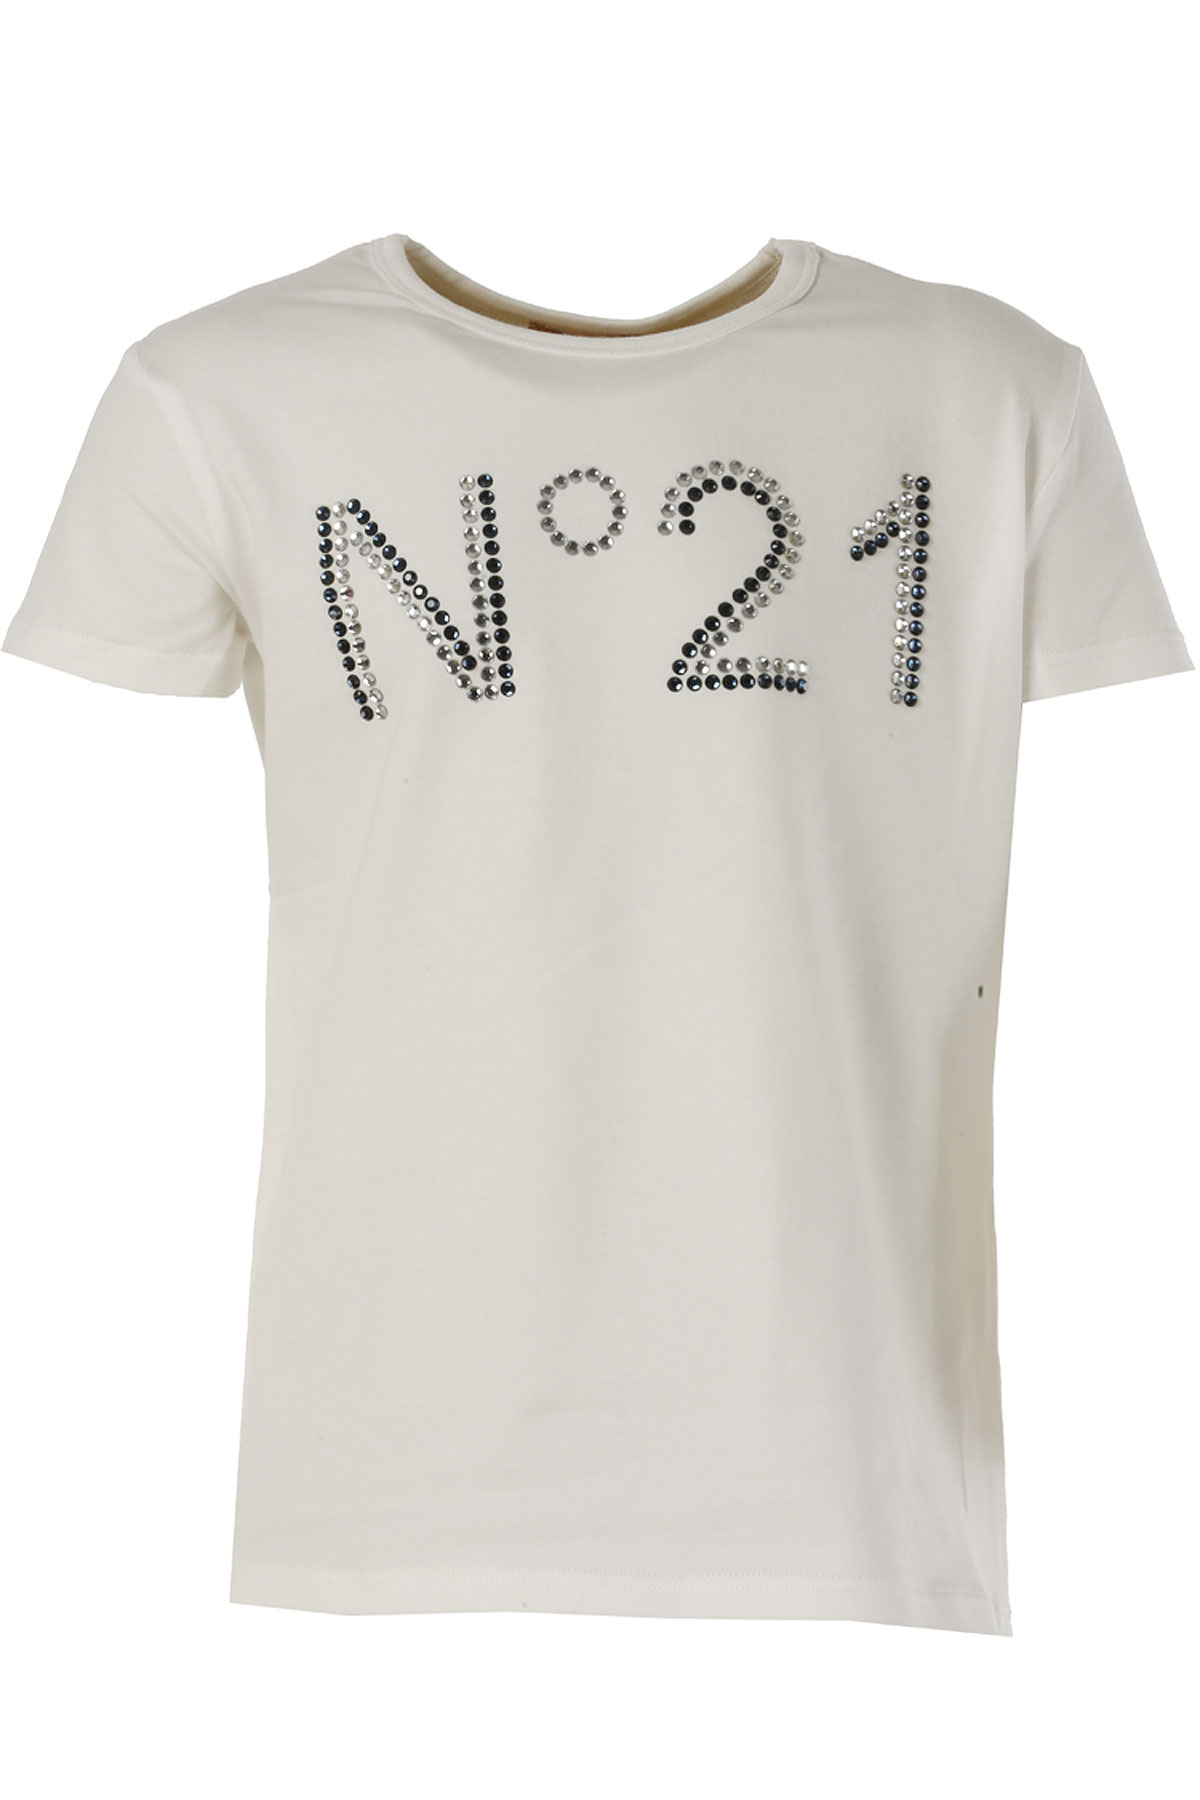 NO 21 Kids T-Shirt for Girls On Sale in Outlet, White, Cotton, 2019, 36 (9 Years) 38 (10 Years)